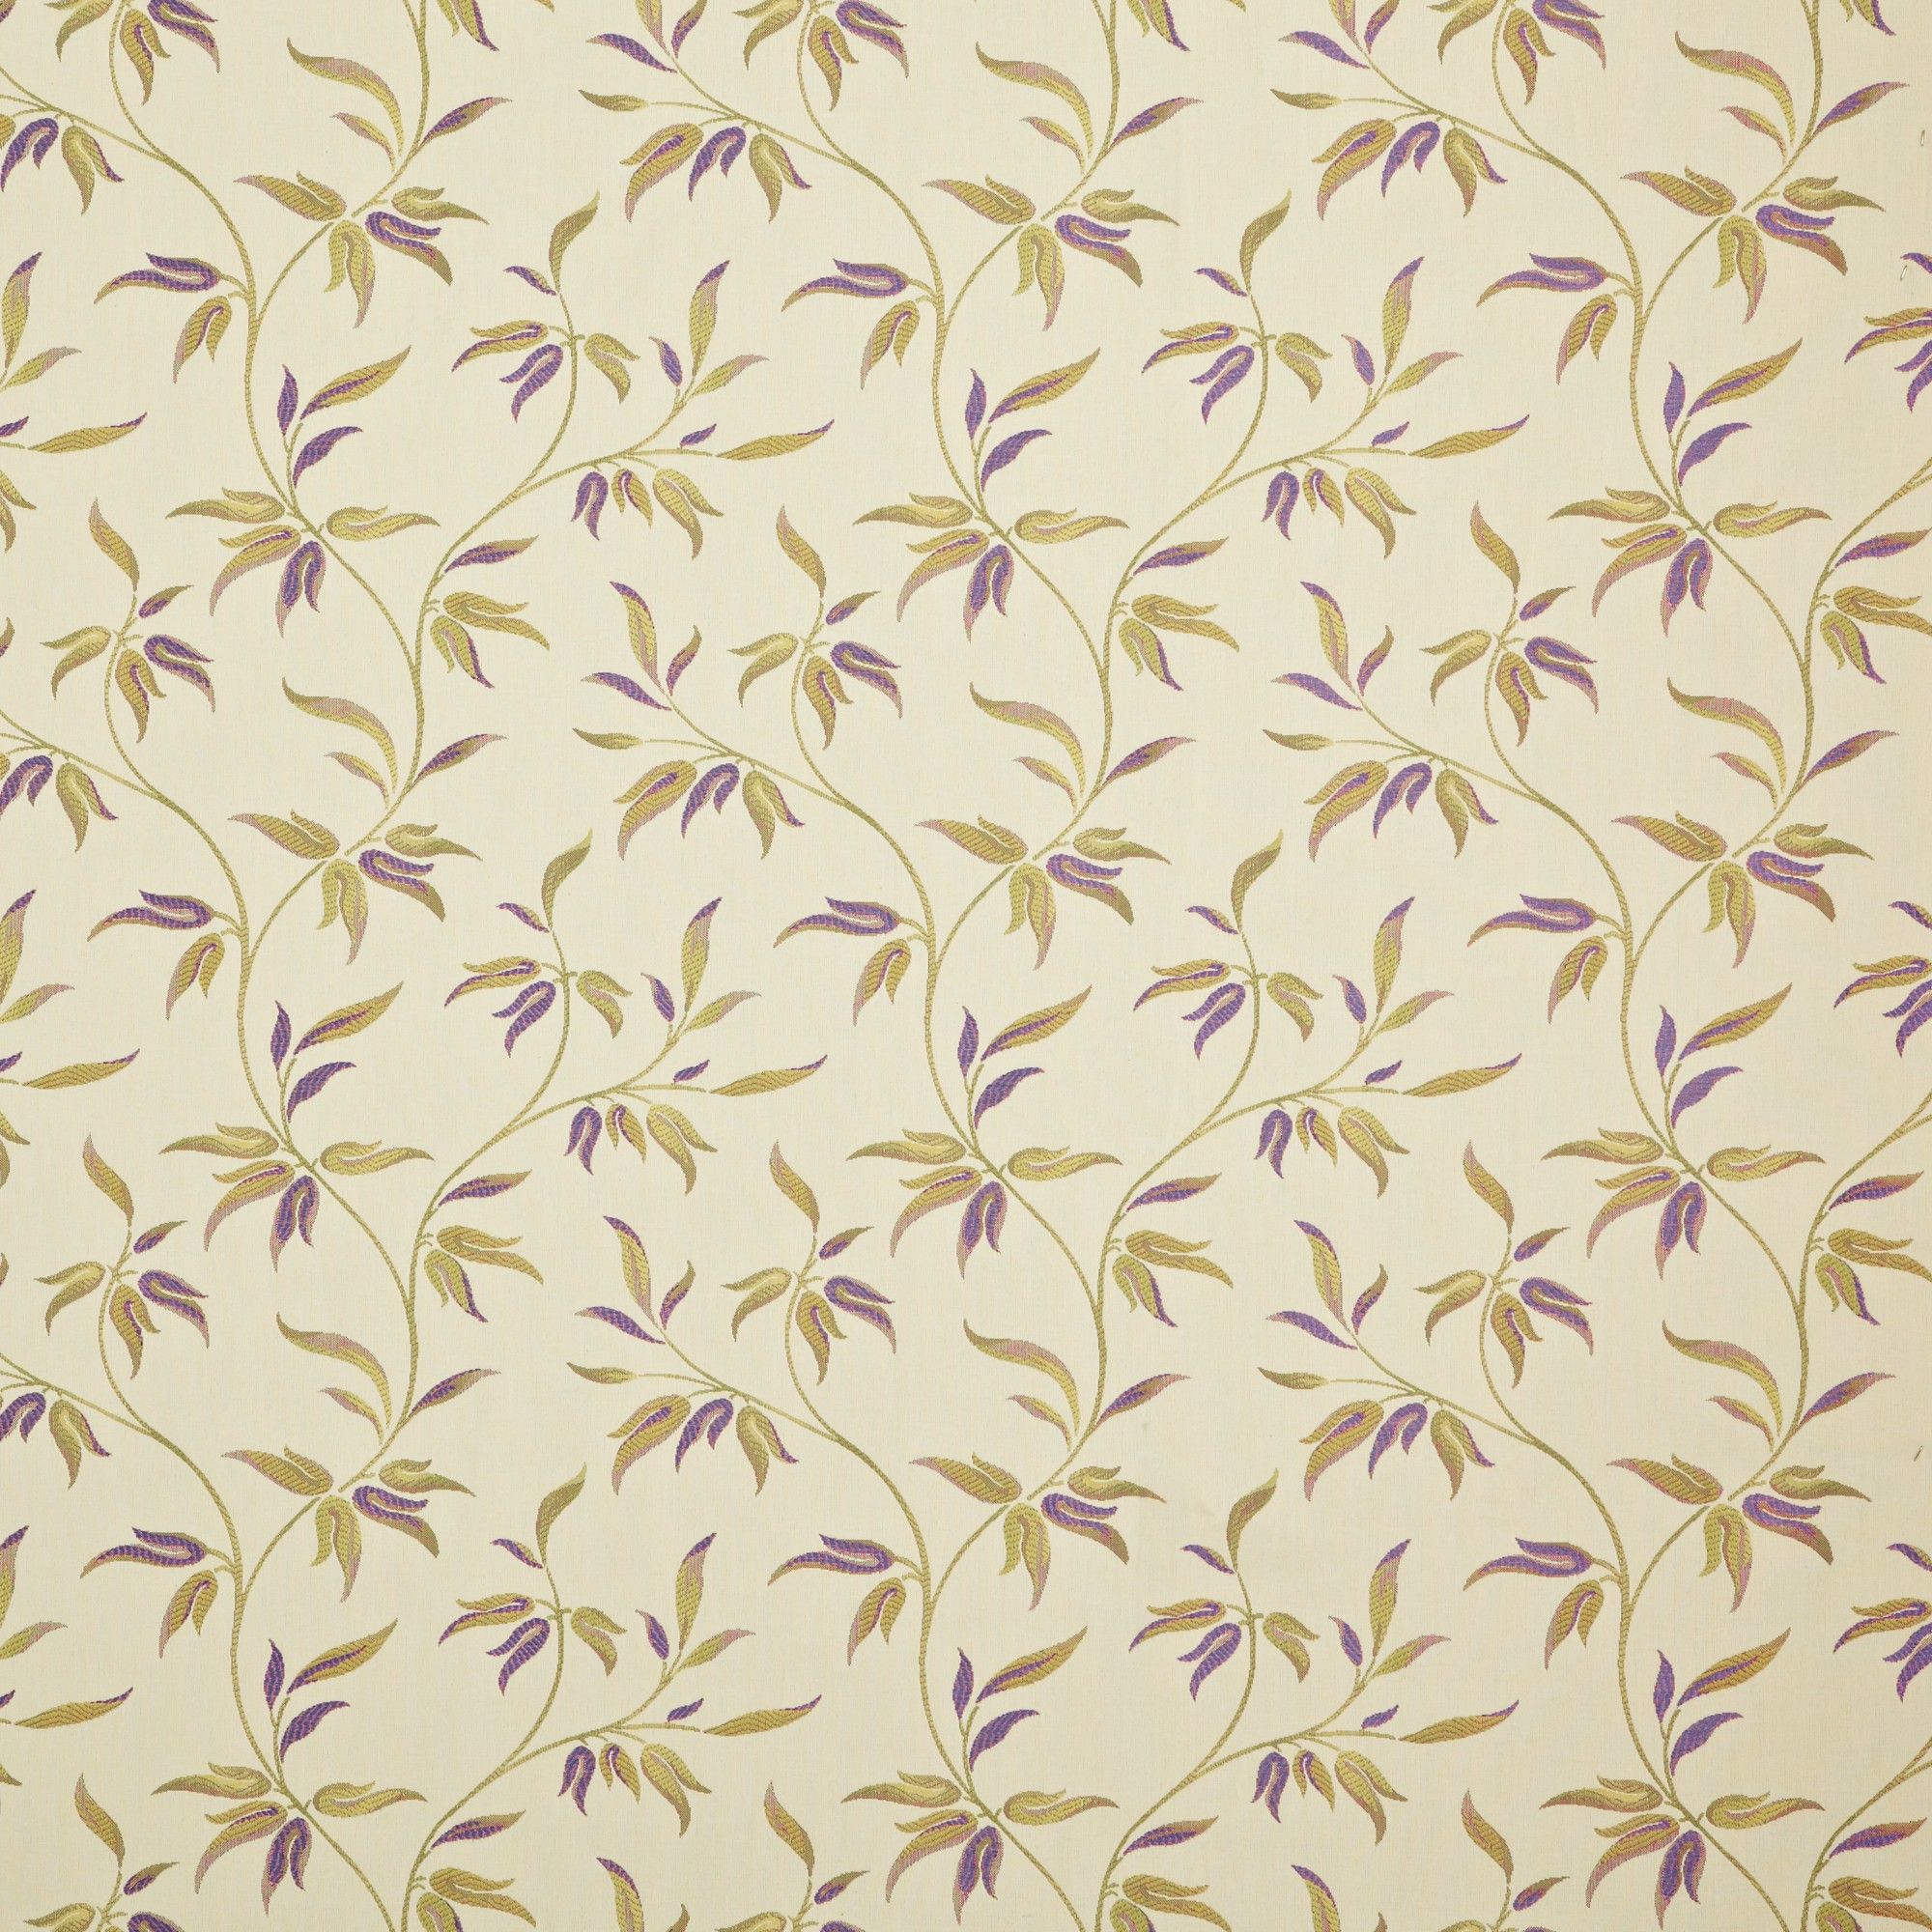 Mauve Sprig Wallpaper Google Search Wallpaper Companies Red Curtains Made To Measure Curtains